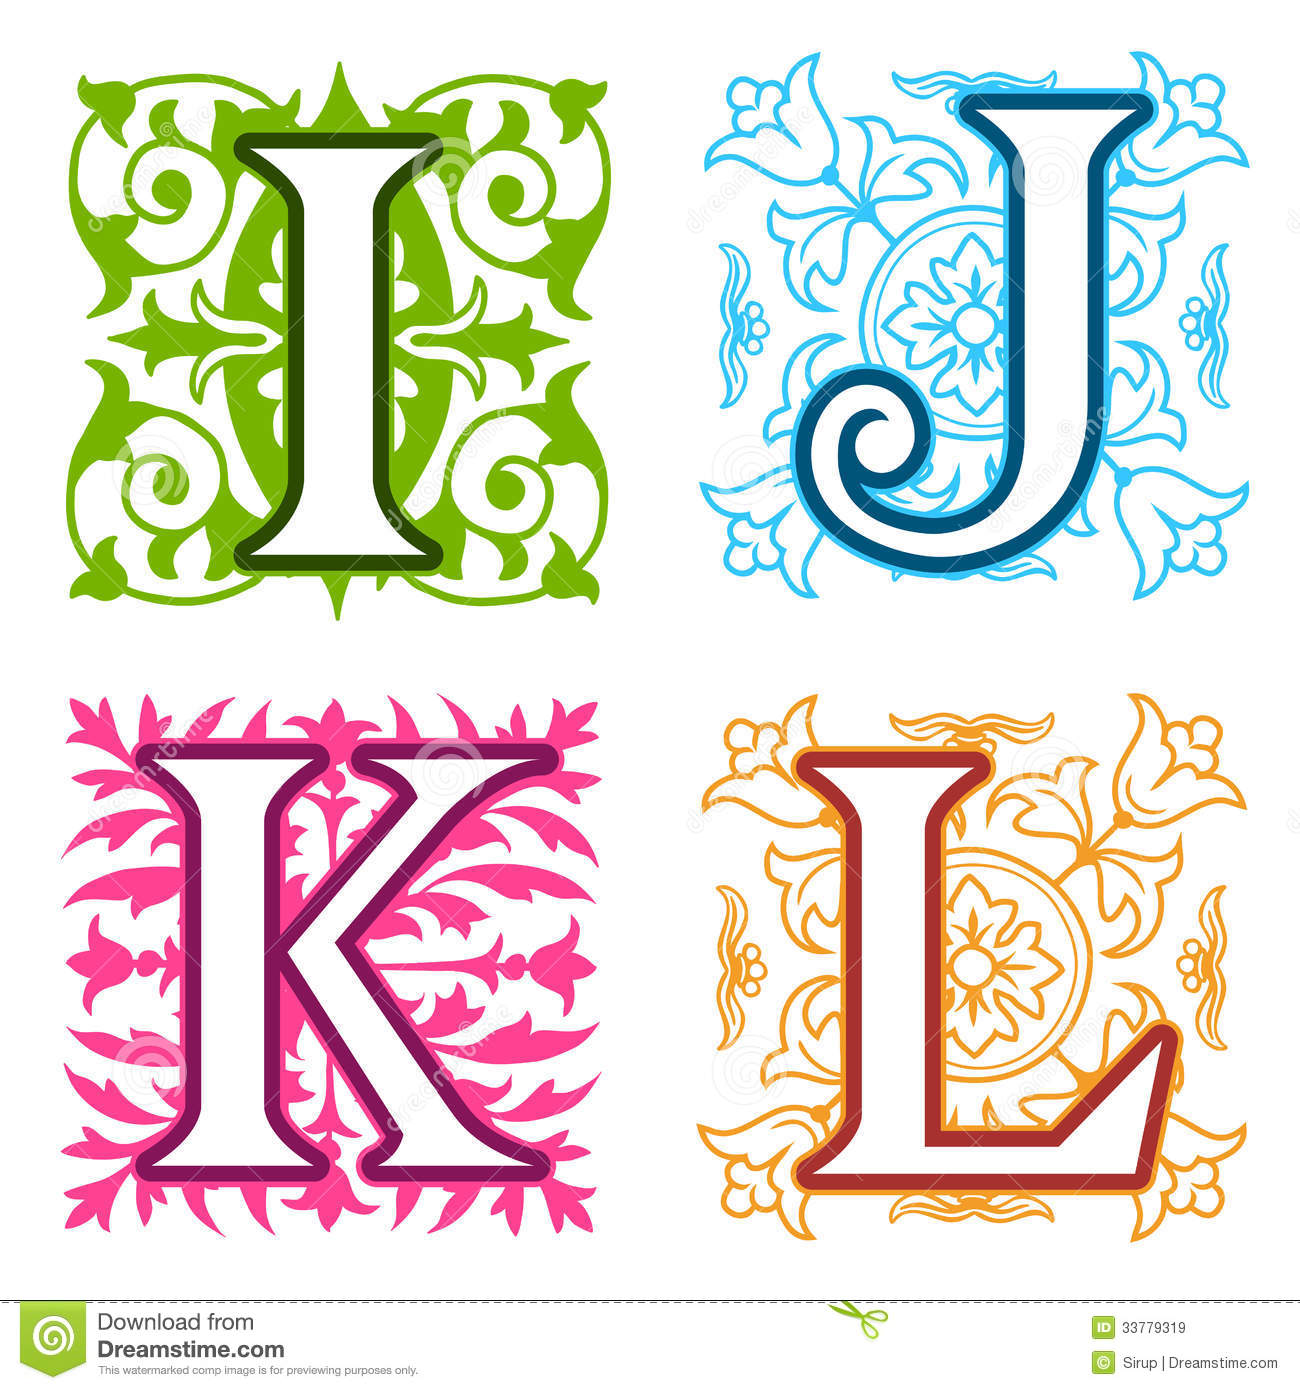 i j k l alphabet letters floral elements stock vector. Black Bedroom Furniture Sets. Home Design Ideas